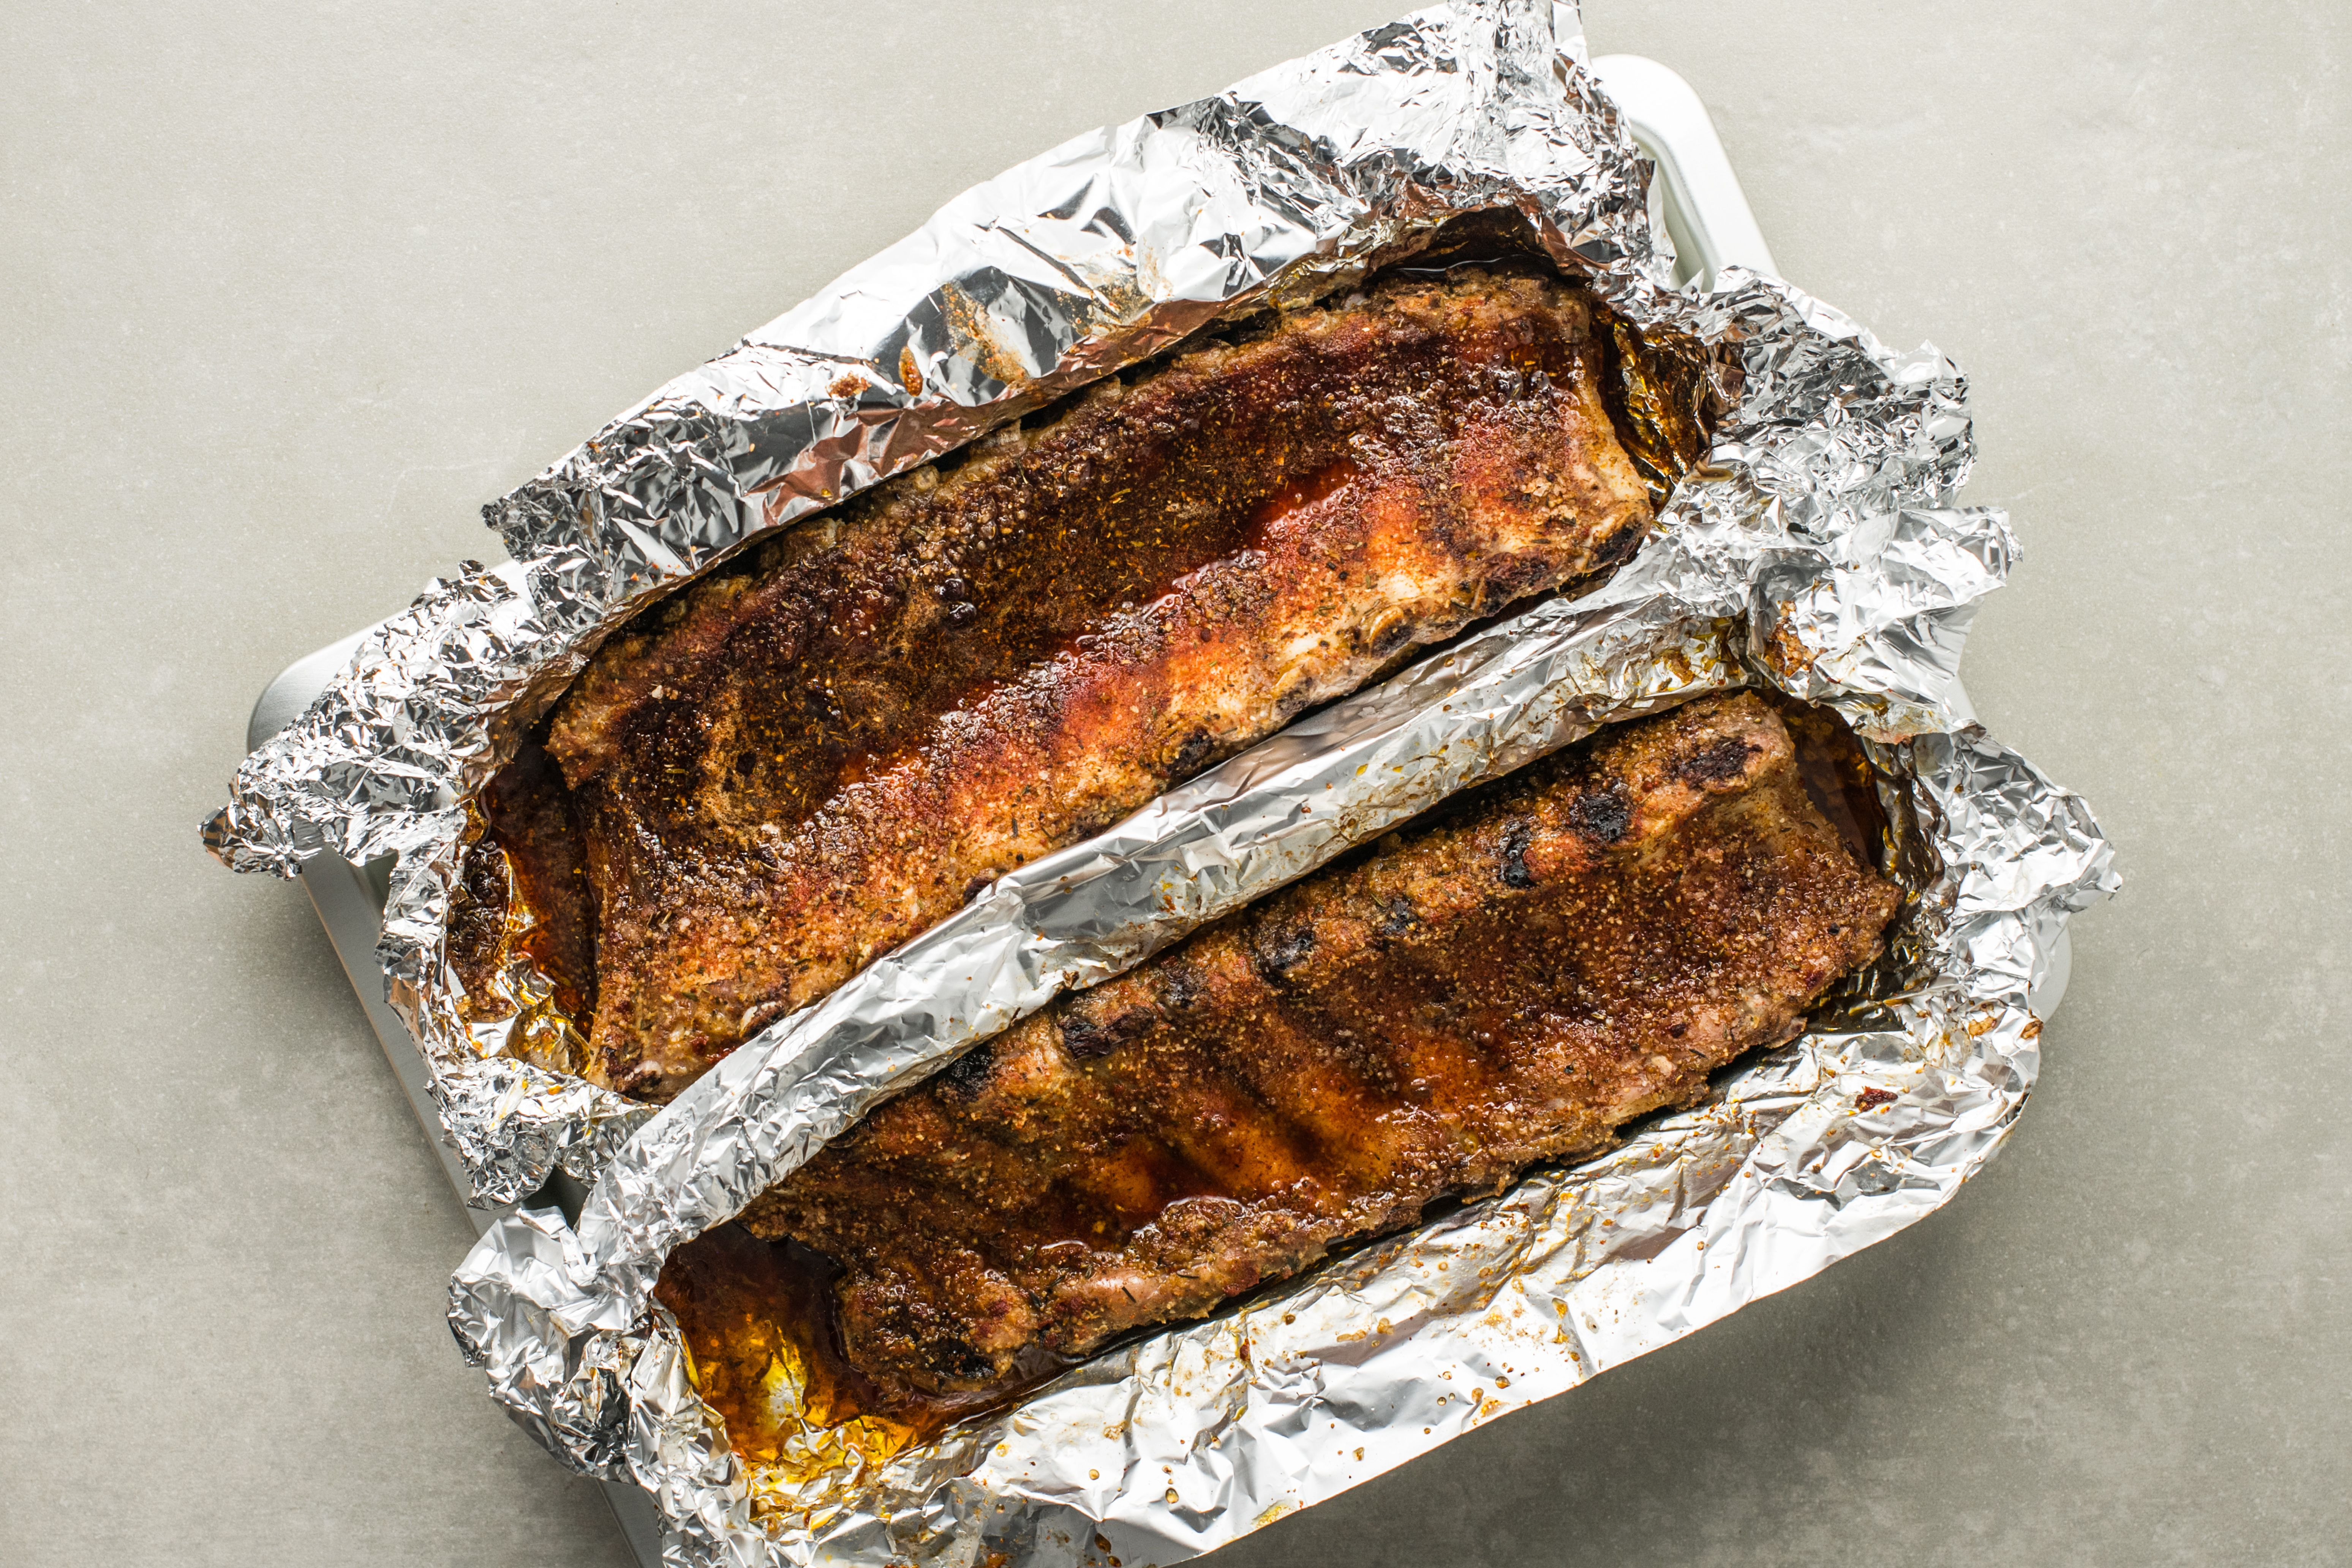 Baked ribs in foil